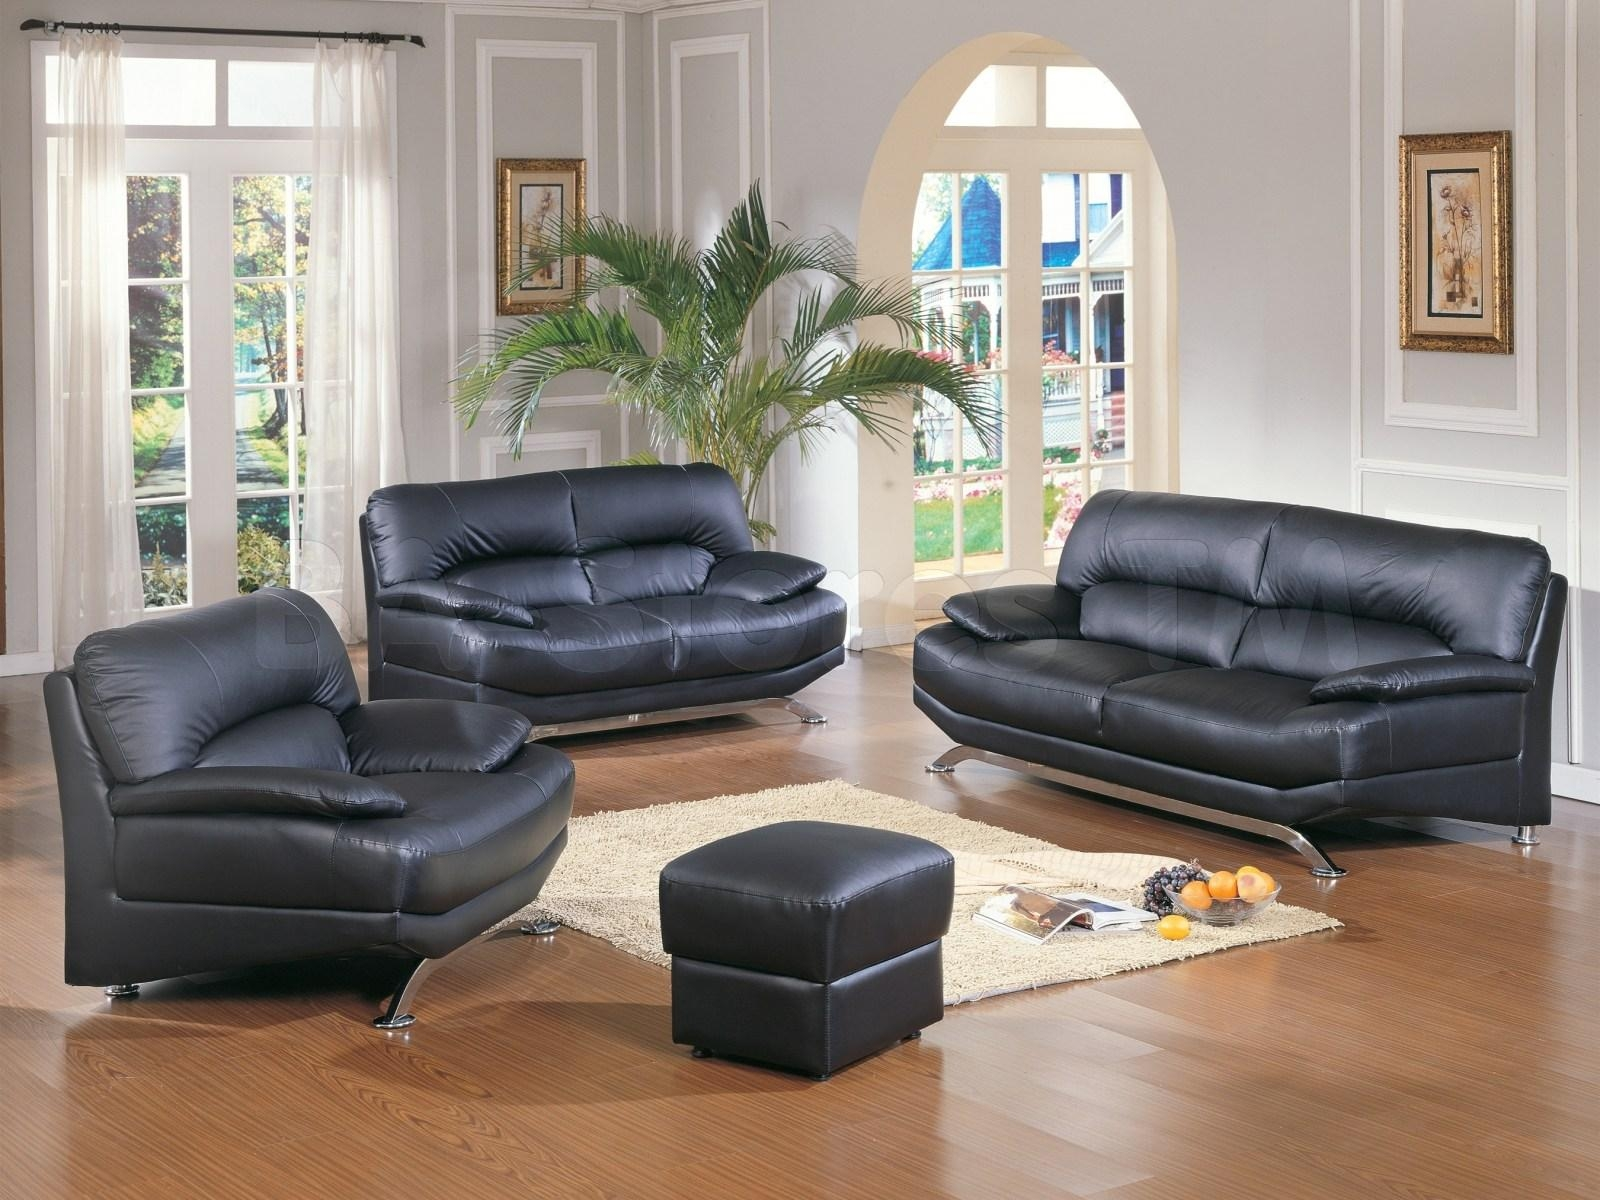 ▻ Sofa : 1 Wonderful Black Leather Sofa Living Room Ideas Sath19 With Regard To Black Sofas For Living Room (View 12 of 20)